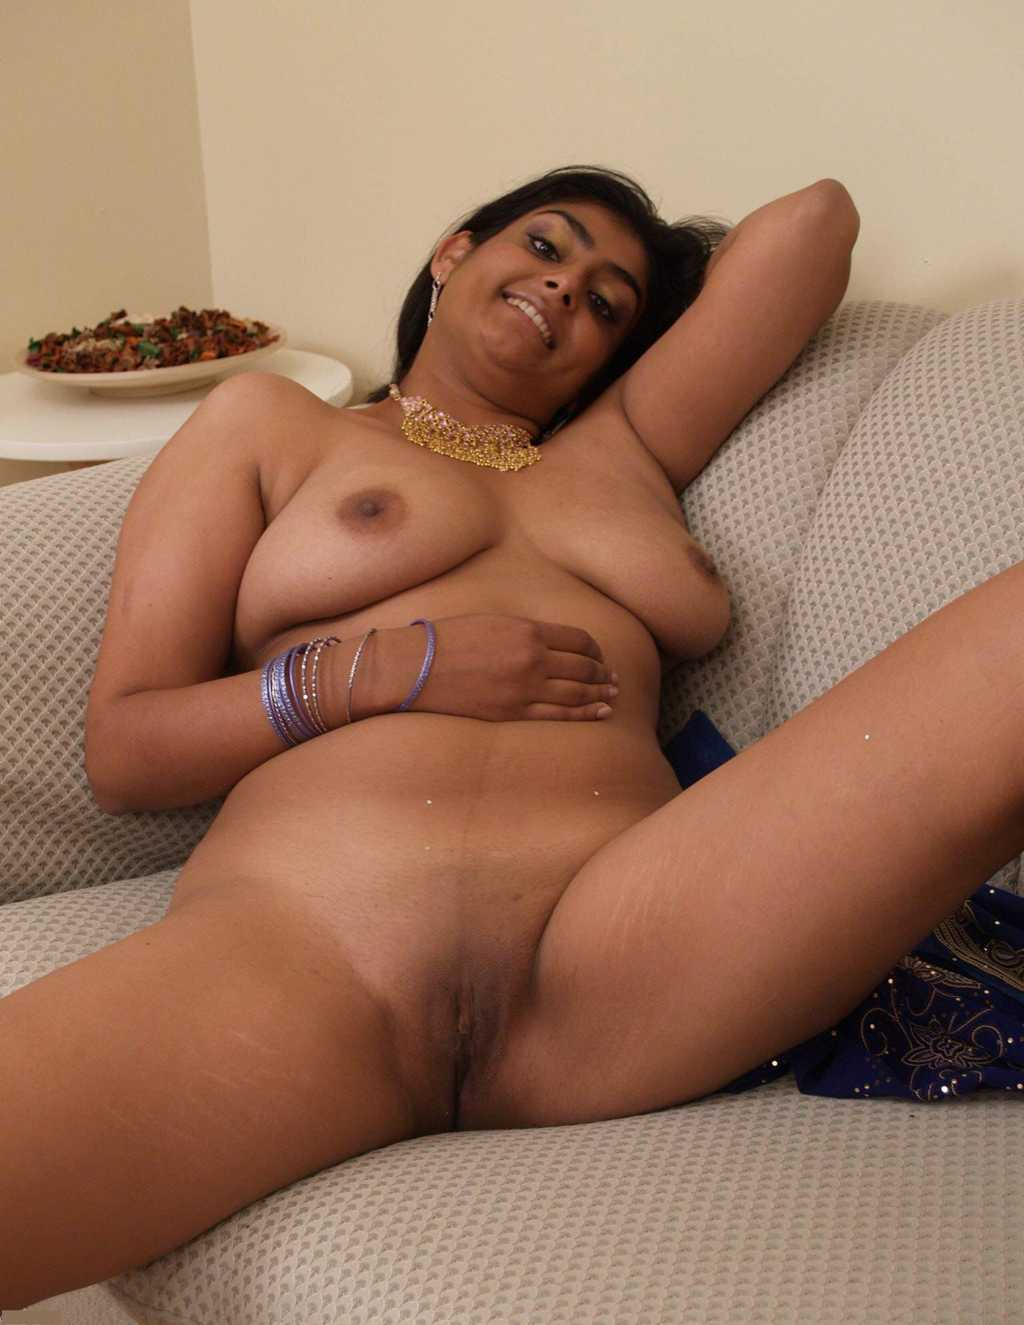 Necessary desi chubby naked girls not hear